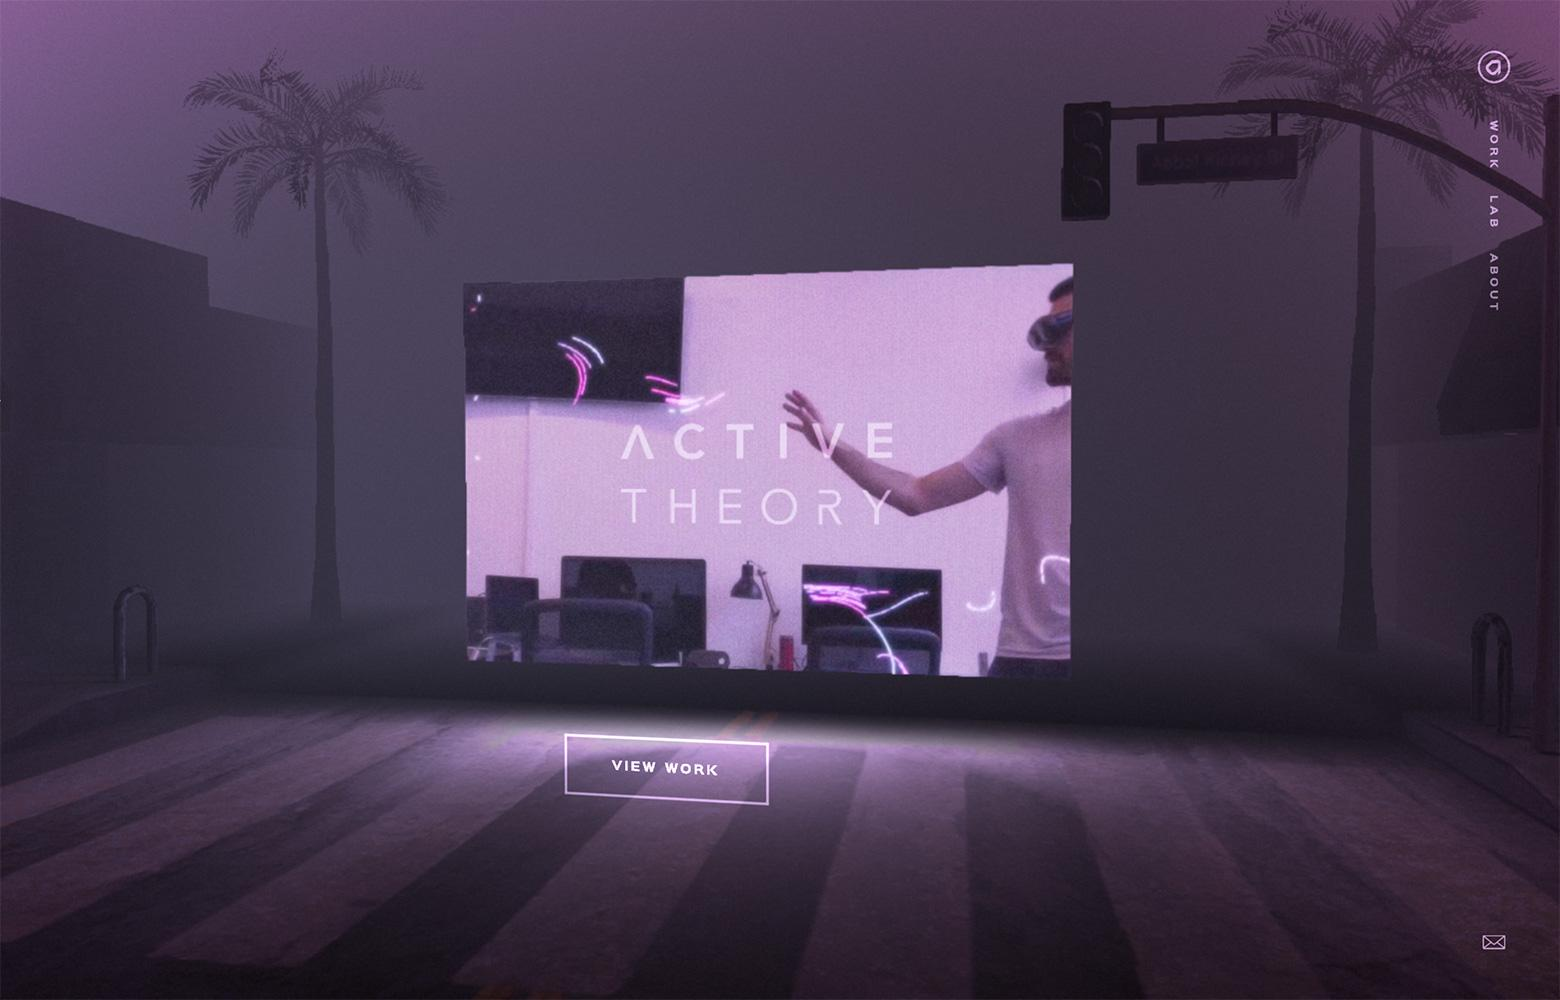 UX Innovation: animations and video content can still be used in innovative designs.